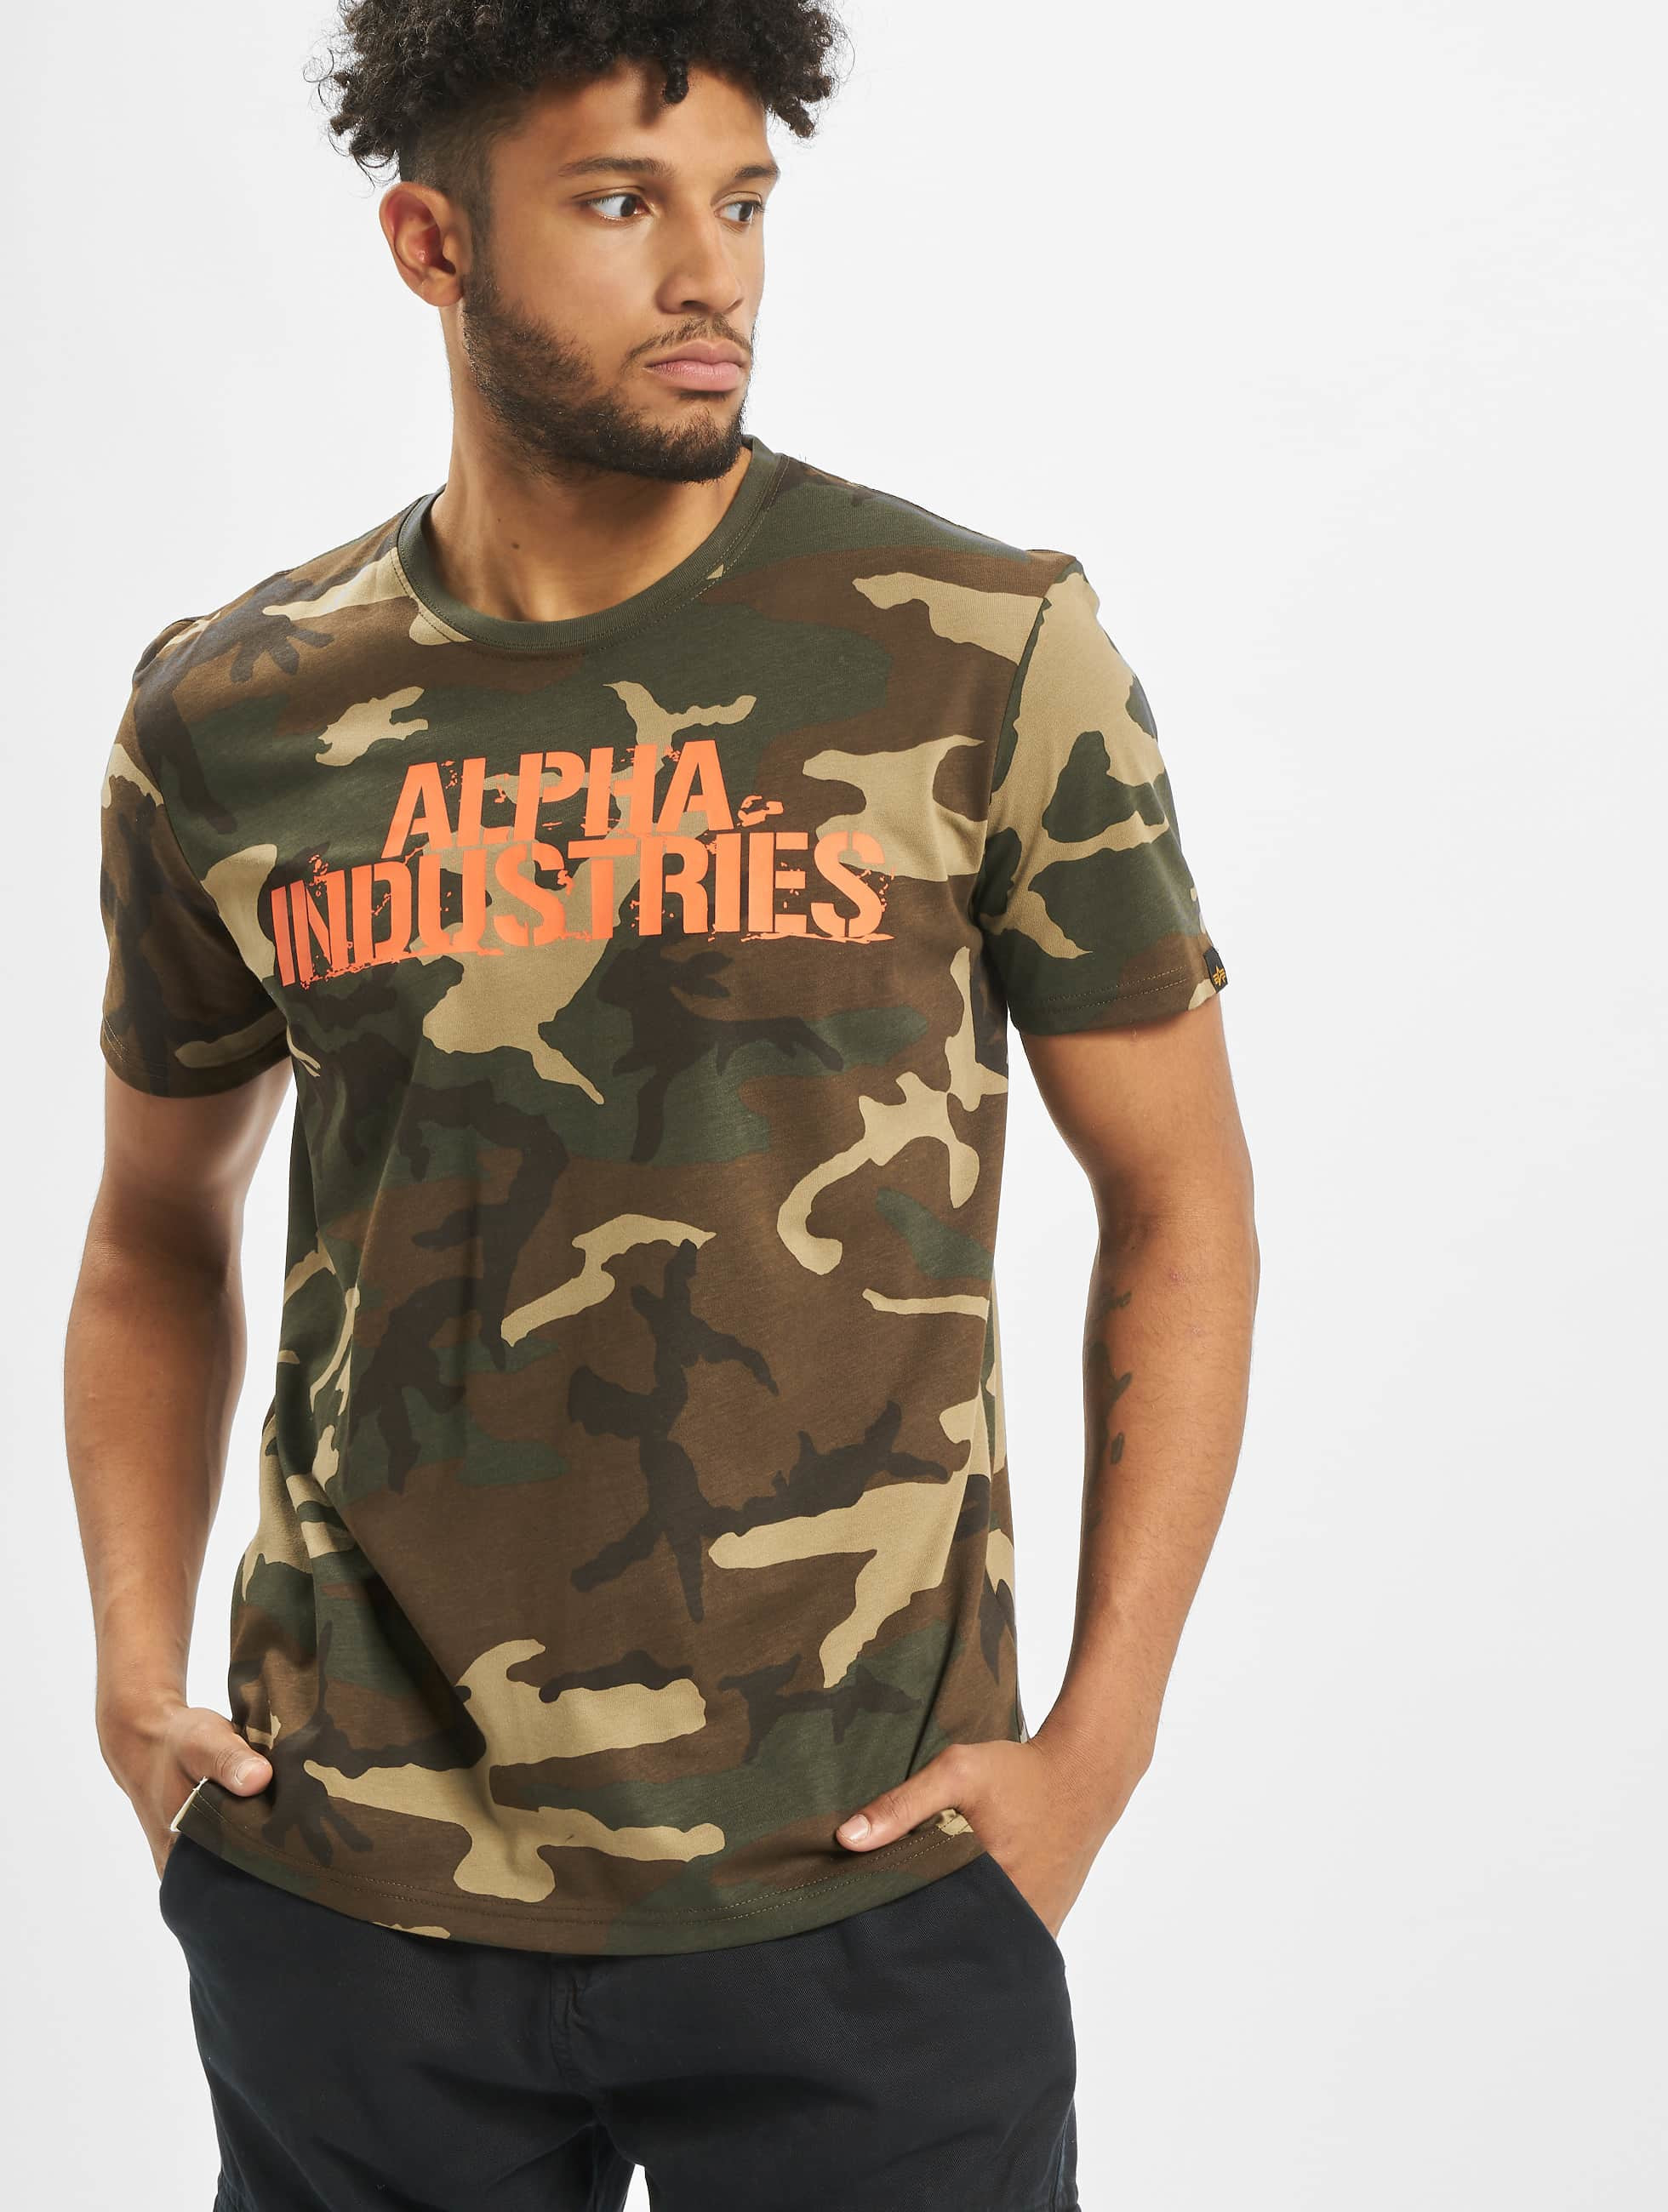 Alpha Industries t-shirt Blurred camouflage